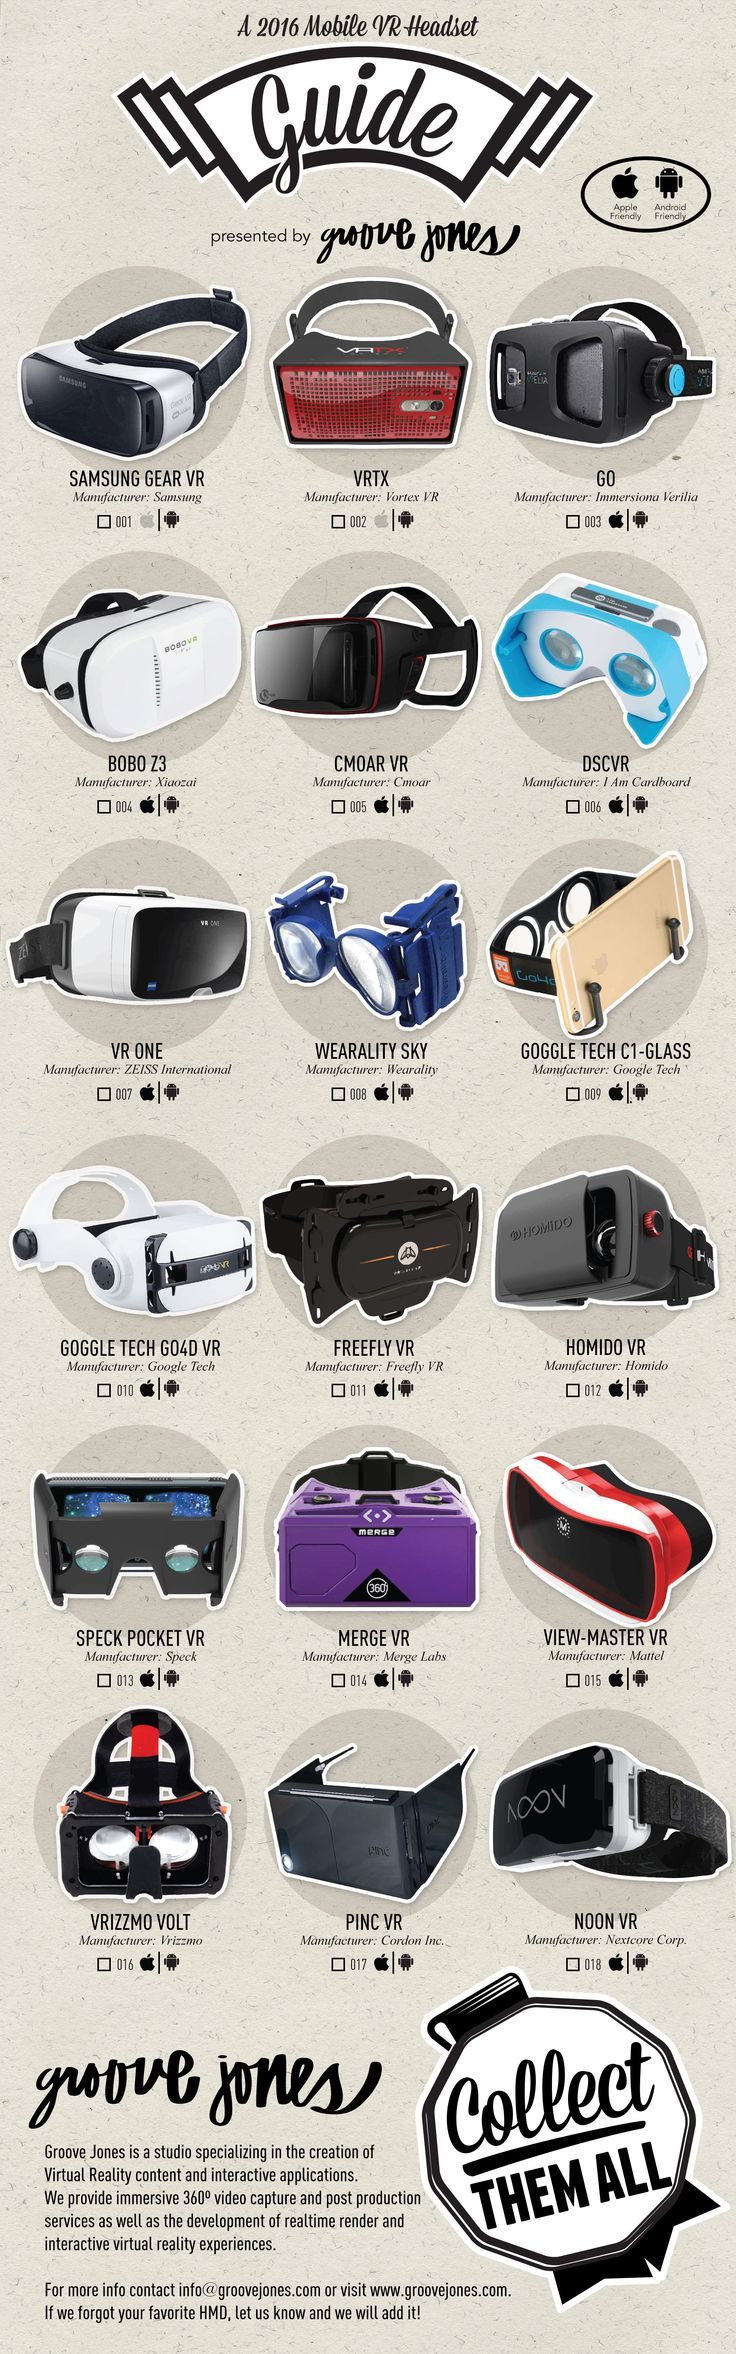 Infographic of the current 2016 Mobile VR Headsets available for sale to consumers. Feel free to use but please give credit – Infographic courtesy of Groove Jones – http://www.groovejones.com. Downloadable PDF File GrooveJones-MobileVRHeadsetChecklist Downloadable PDF (1920 x 6500 image) Downloadable PDF File GrooveJones-MobileVRHeadsetChecklist Want to get in touch? Contact us anytime.